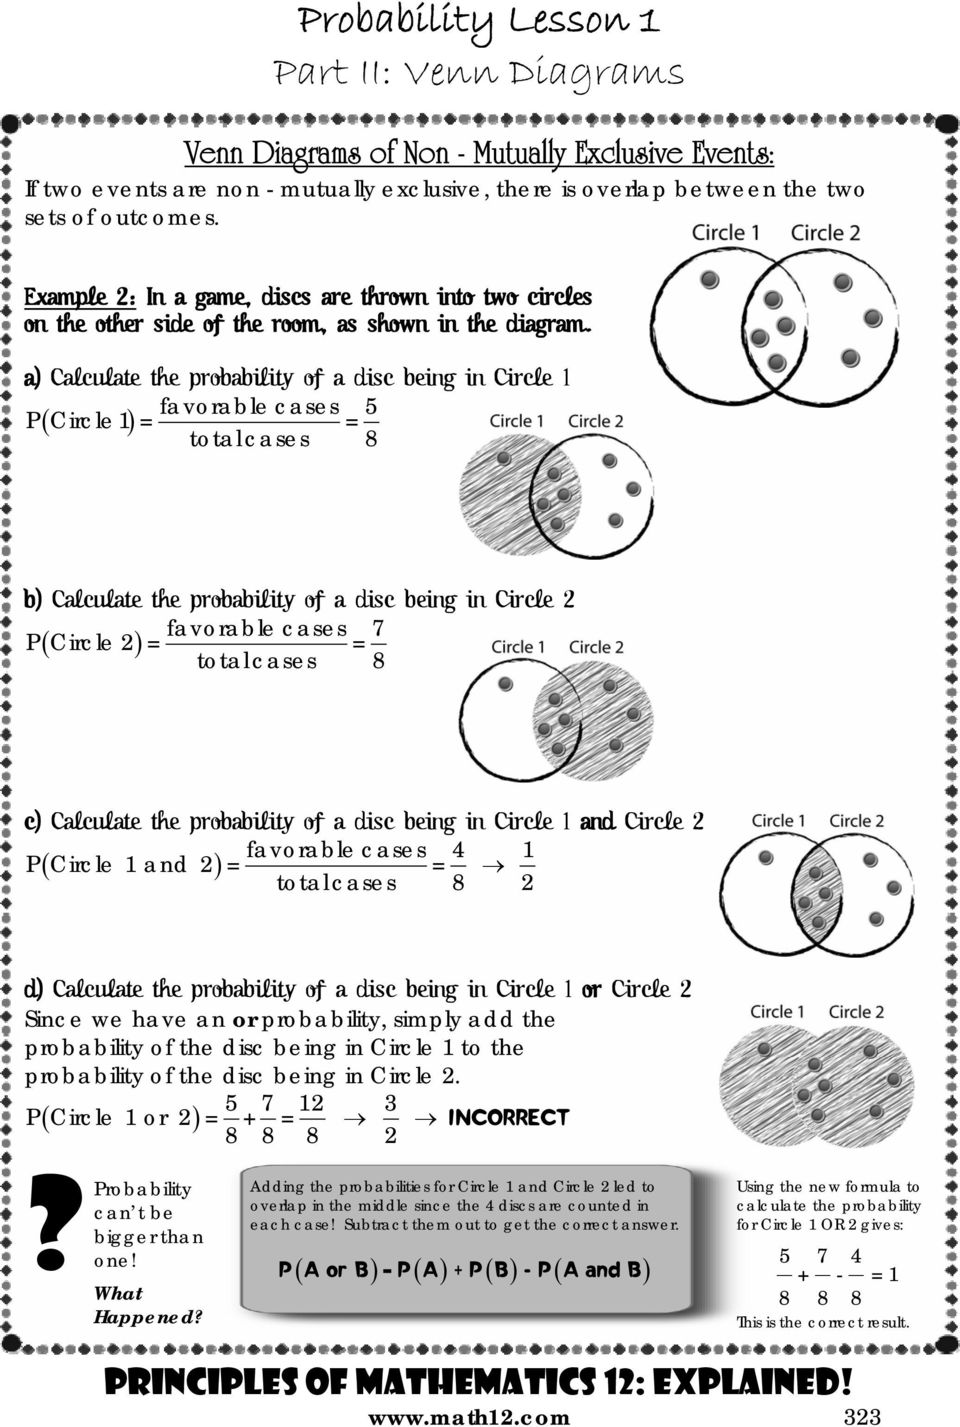 Lesson 1 basics of probability principles of mathematics 12 a calculate the probability of a disc being in circle 1 favorable cases 5 pcircle pooptronica